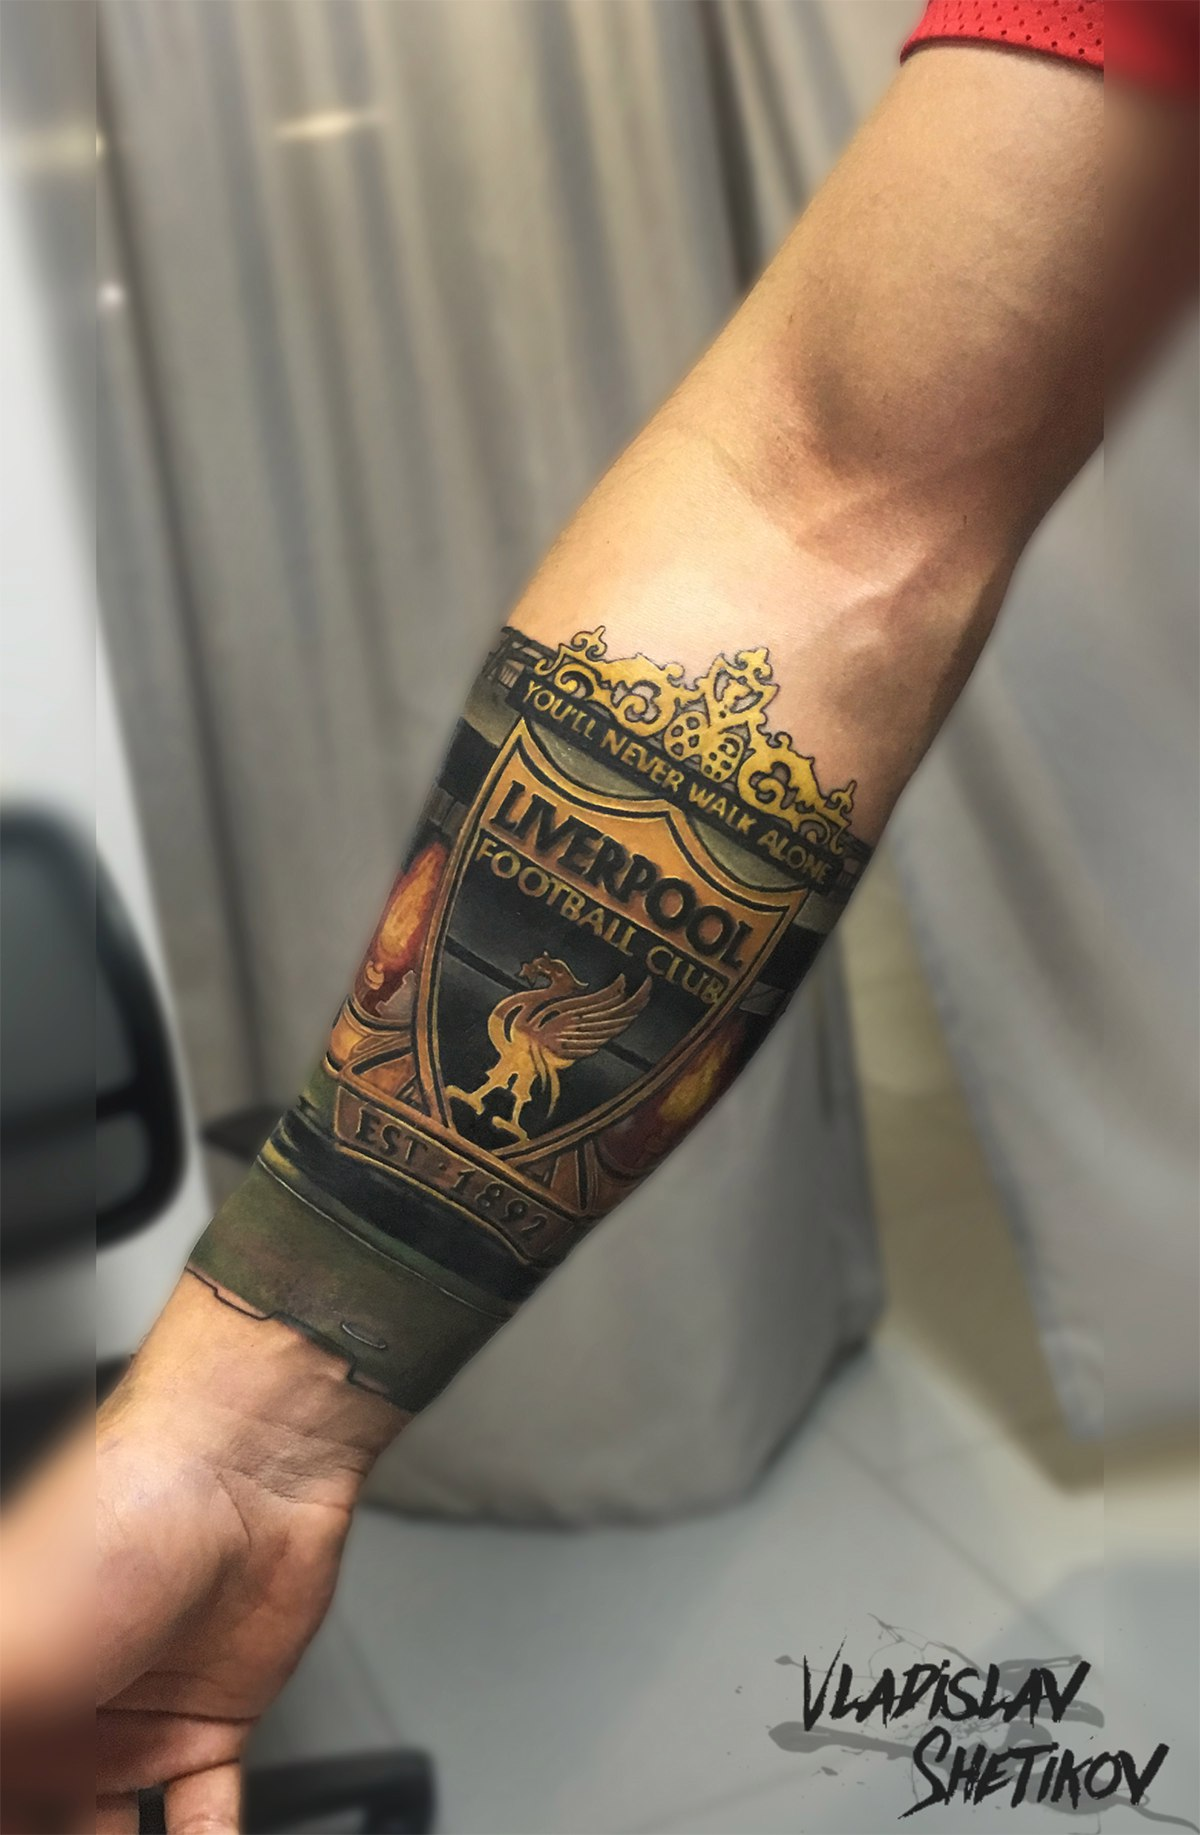 Awesome colorfull tattoo with Liverpoll football club logo